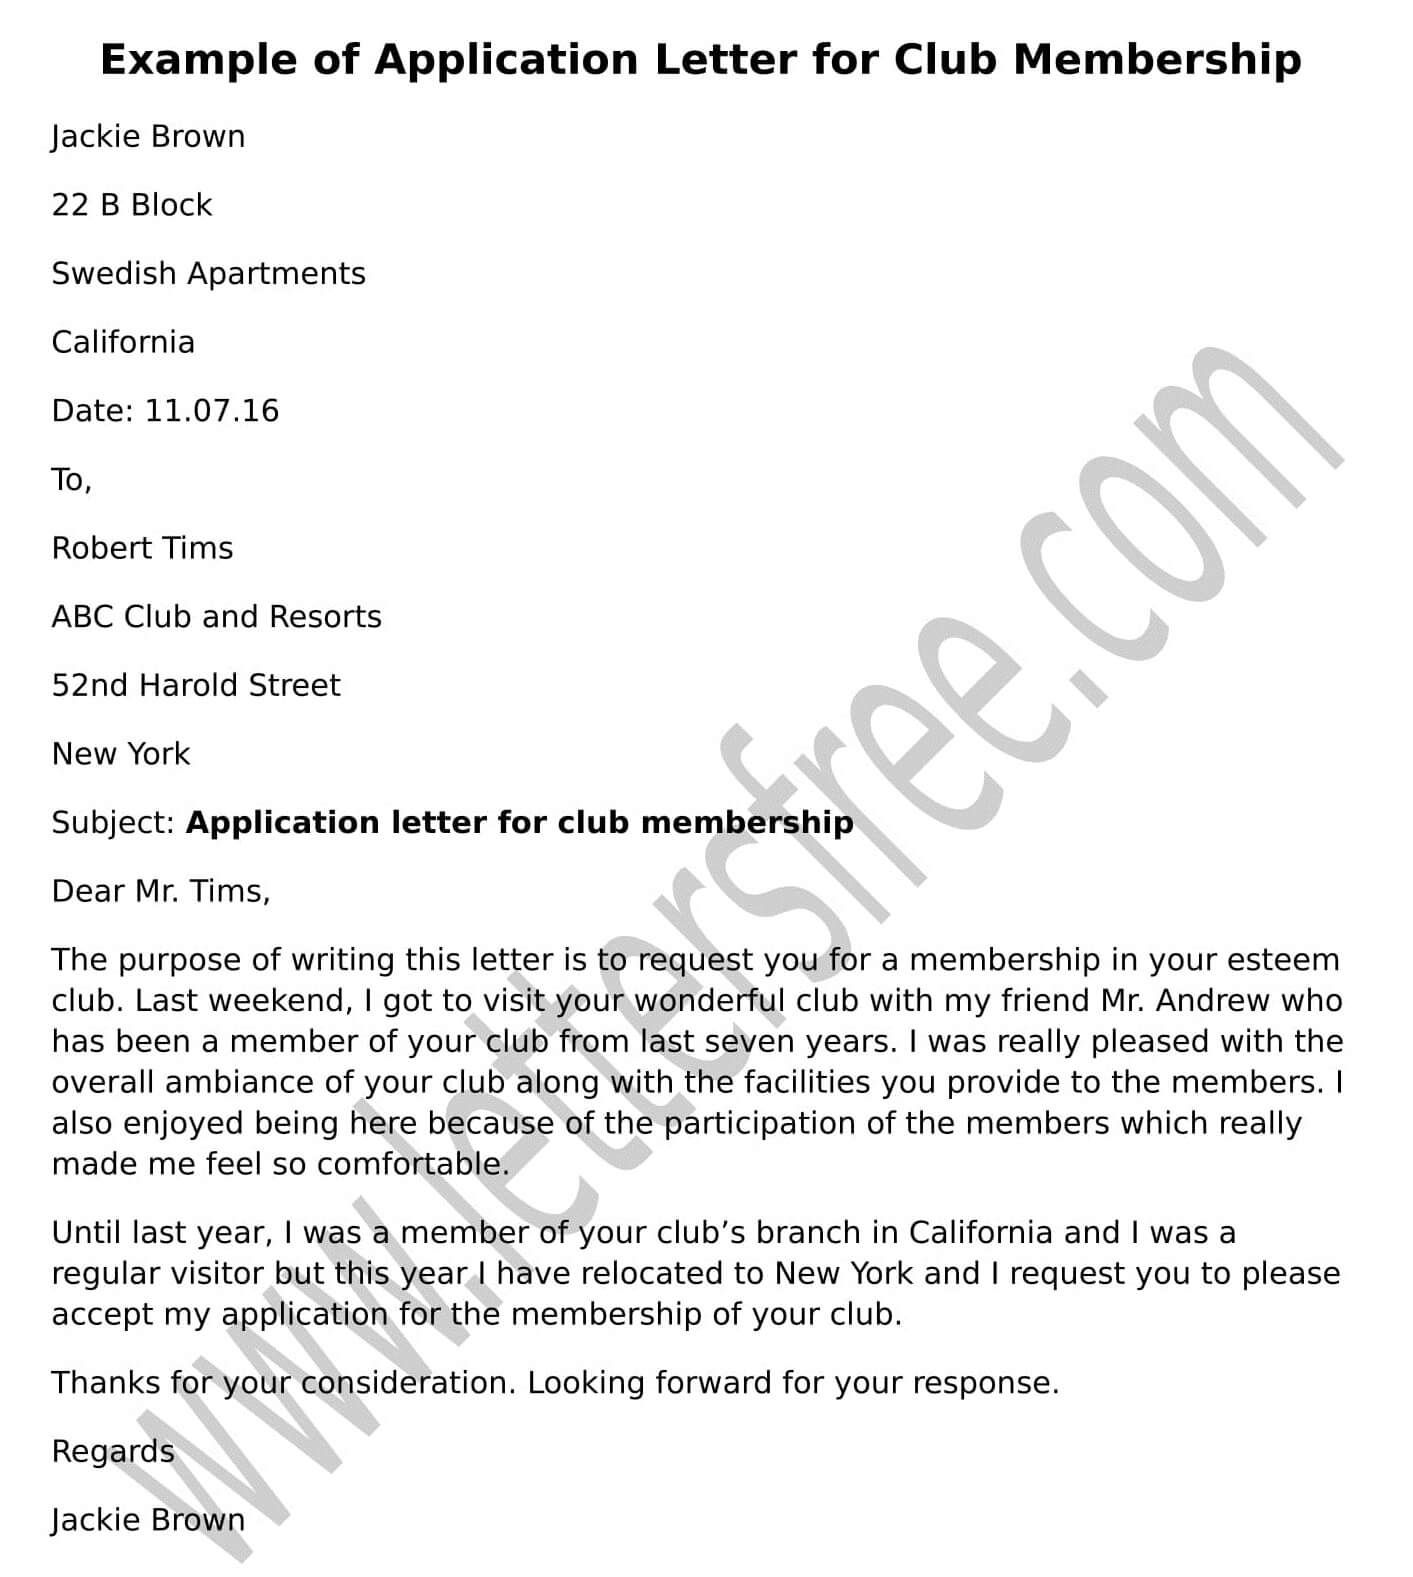 Sample Application Letter For Club Membership To Write A